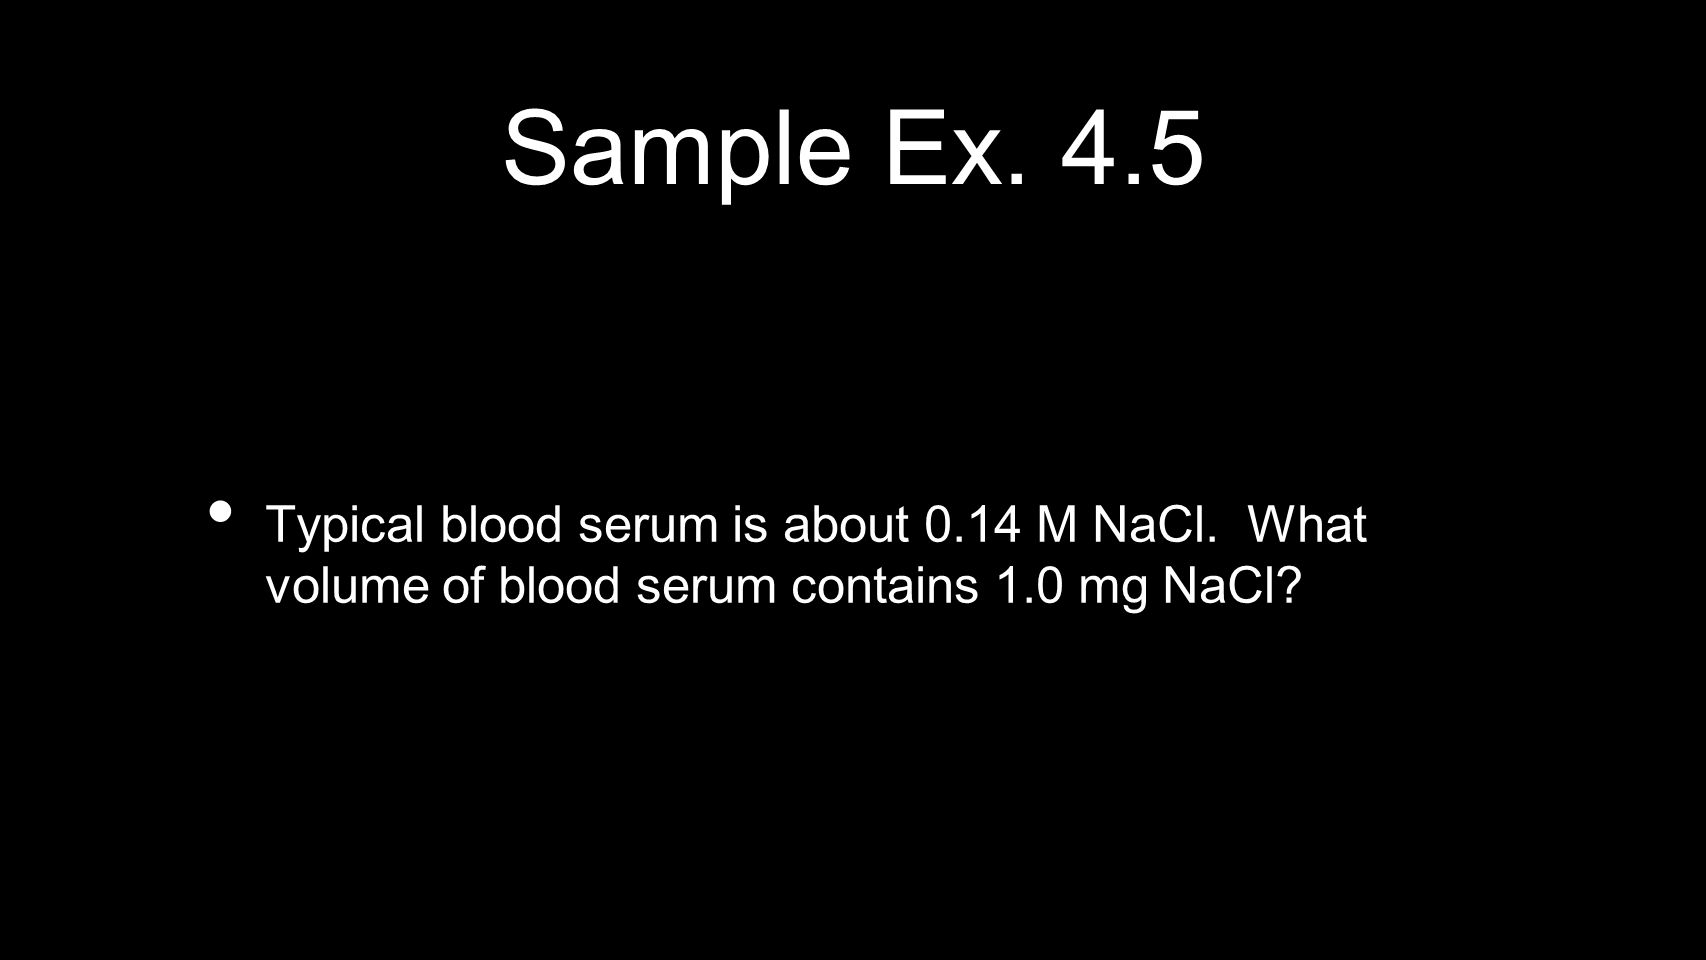 Sample Ex. 4.5 Typical blood serum is about 0.14 M NaCl.